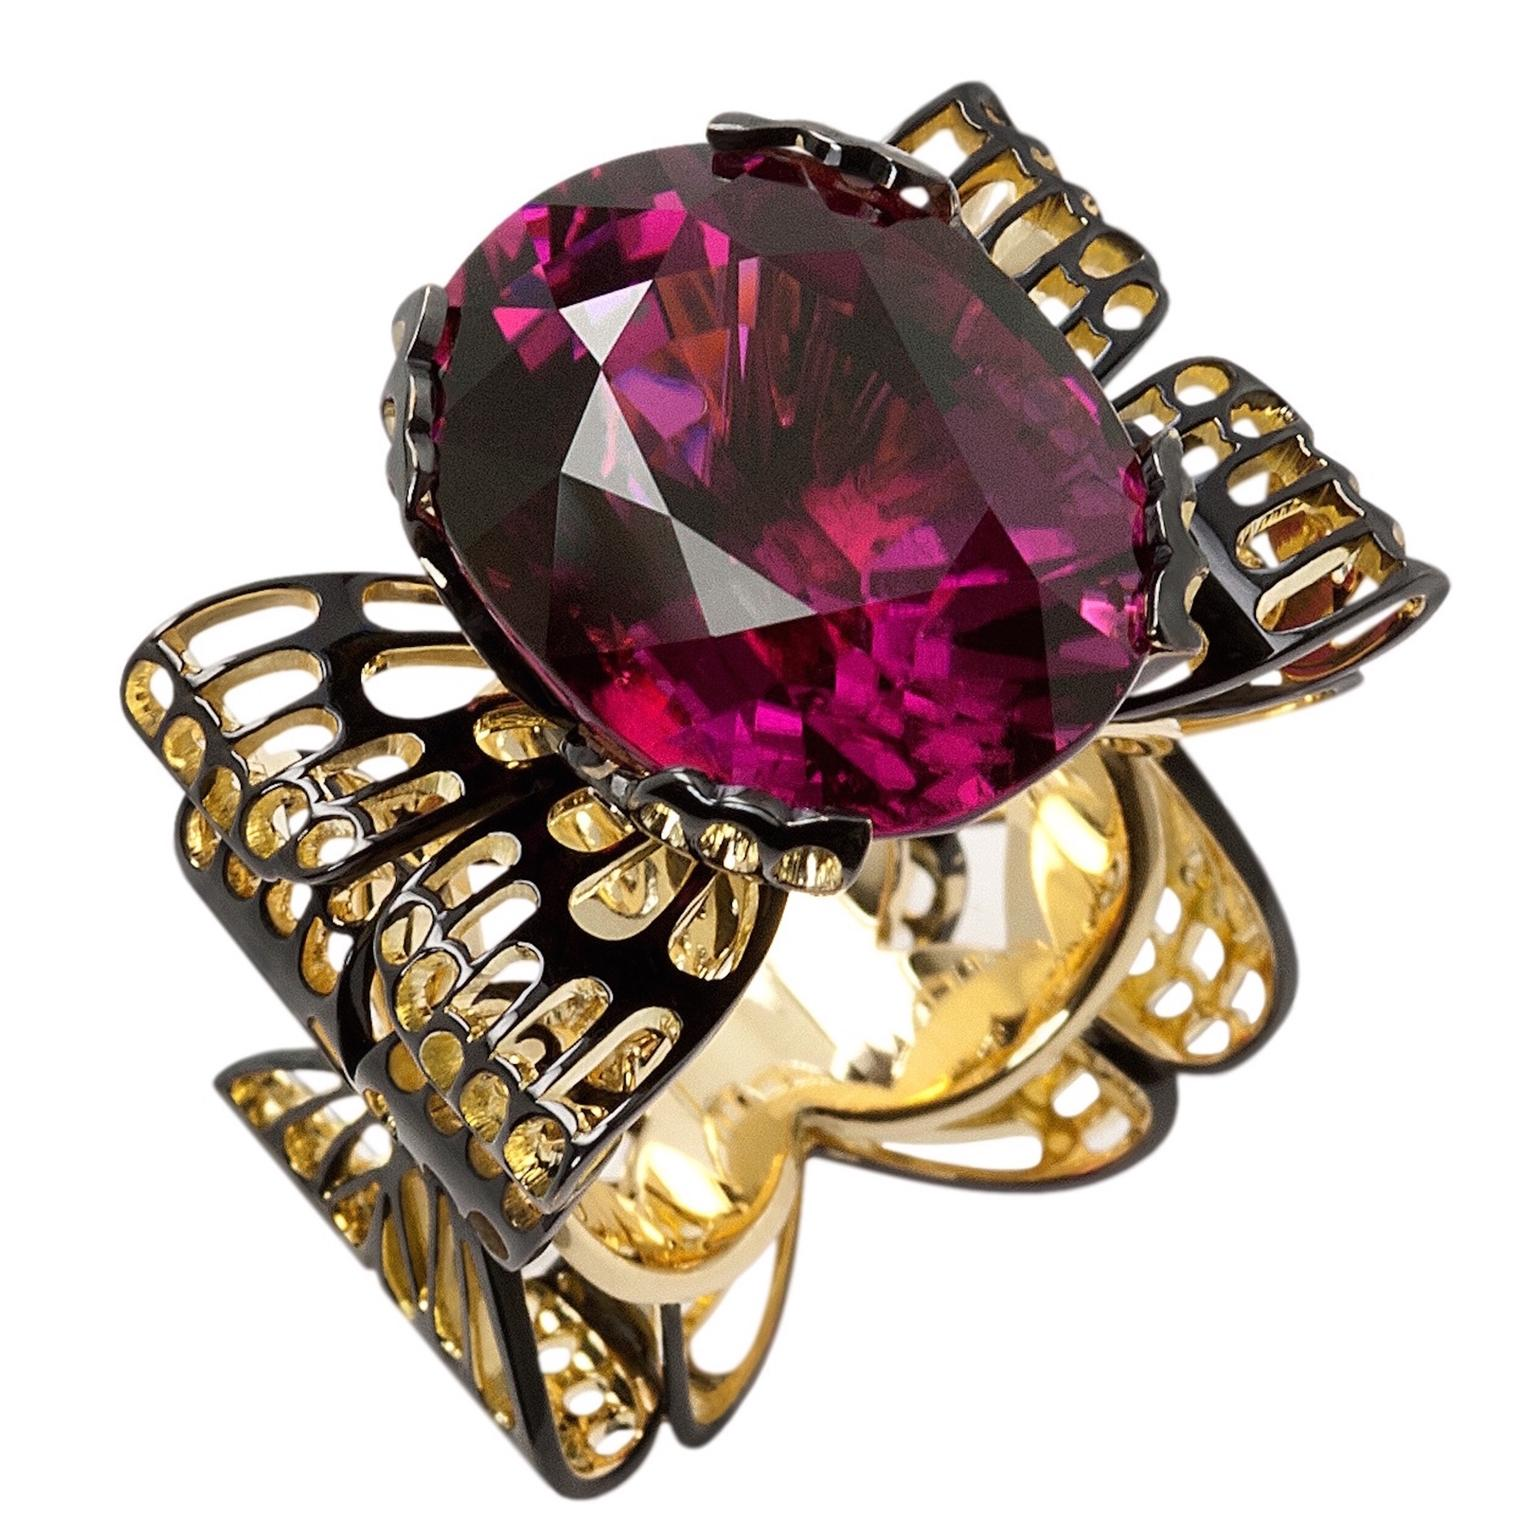 Ming Lampson Butterfly pink tourmaline ring